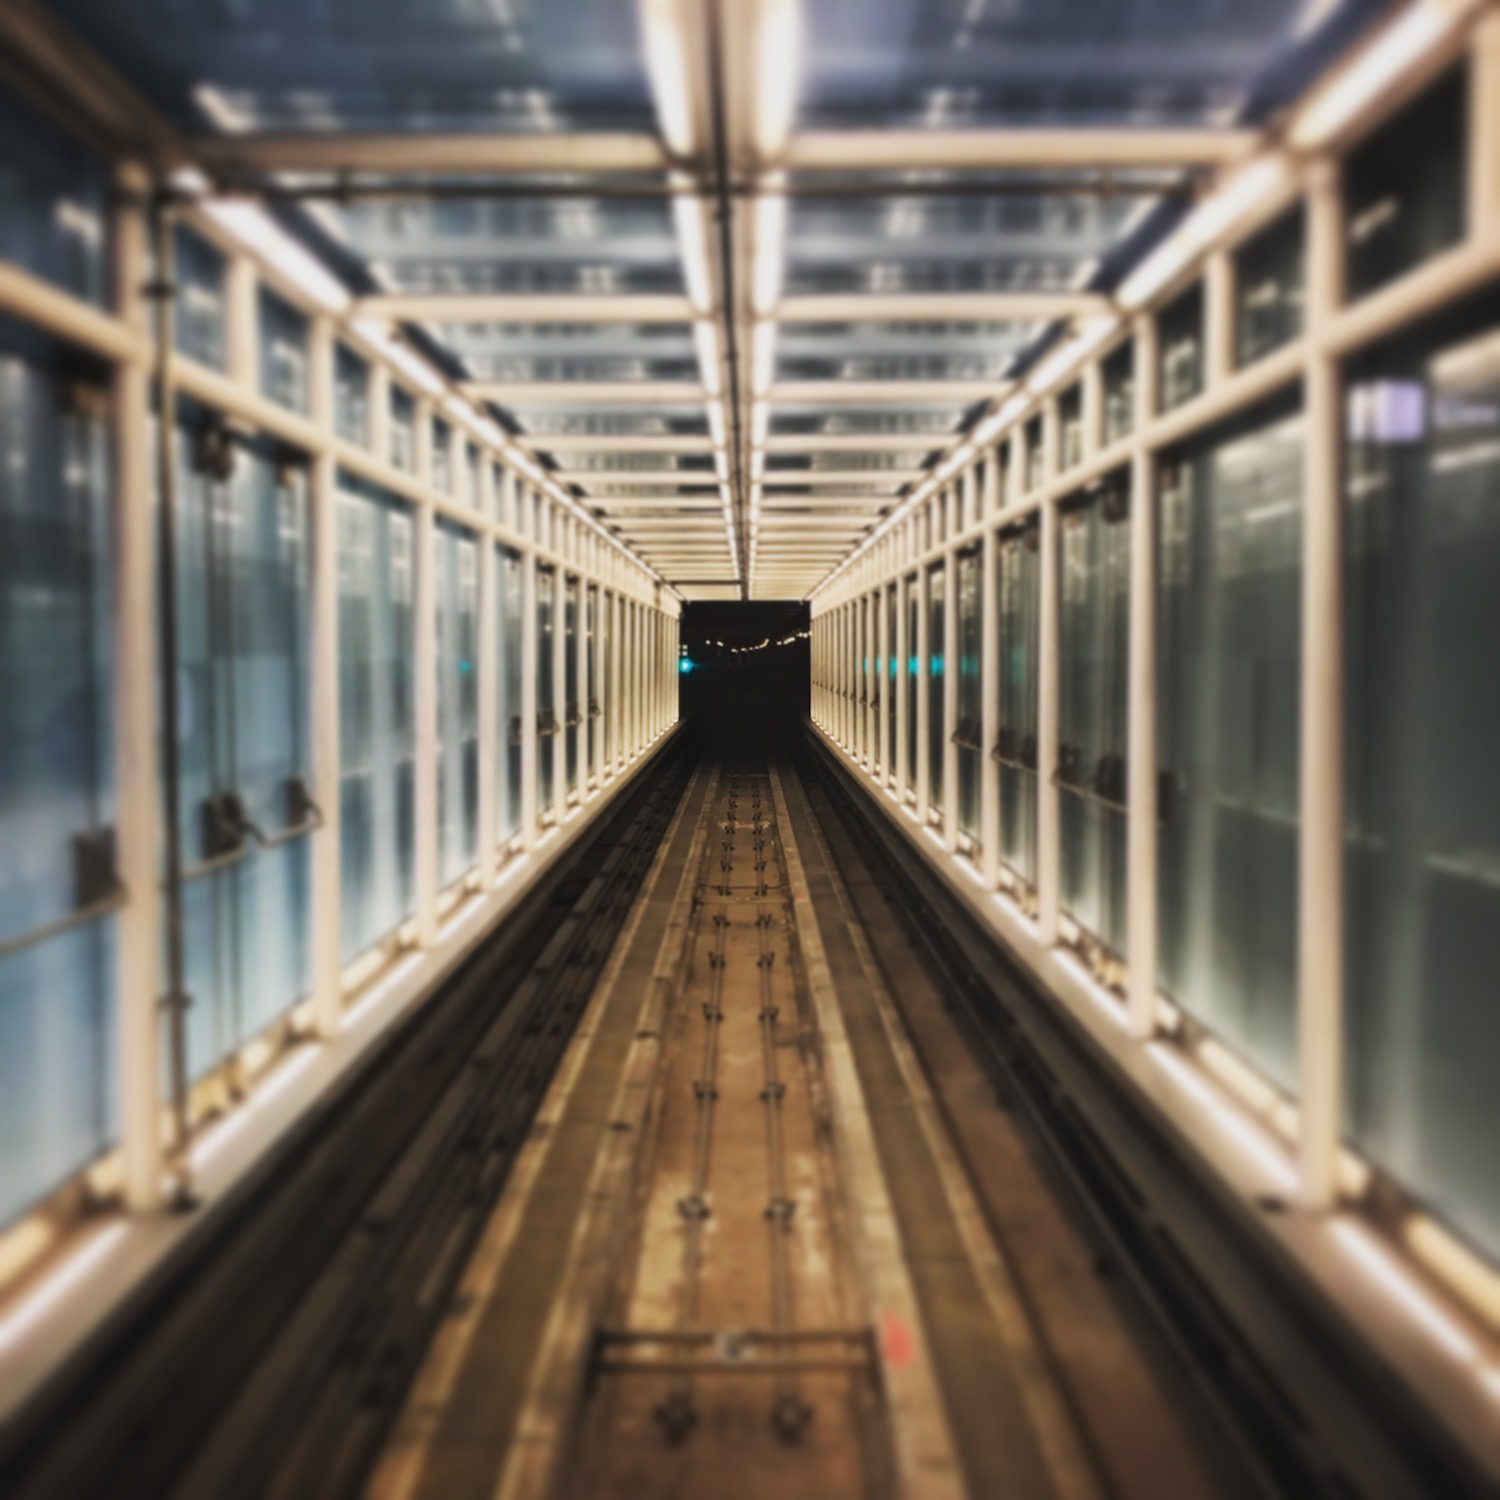 Staring down the tunnel of the AeroTrain connecting the terminals at Washington-Dulles International Airport (IAD) where this story begins (and, sadly, ends).